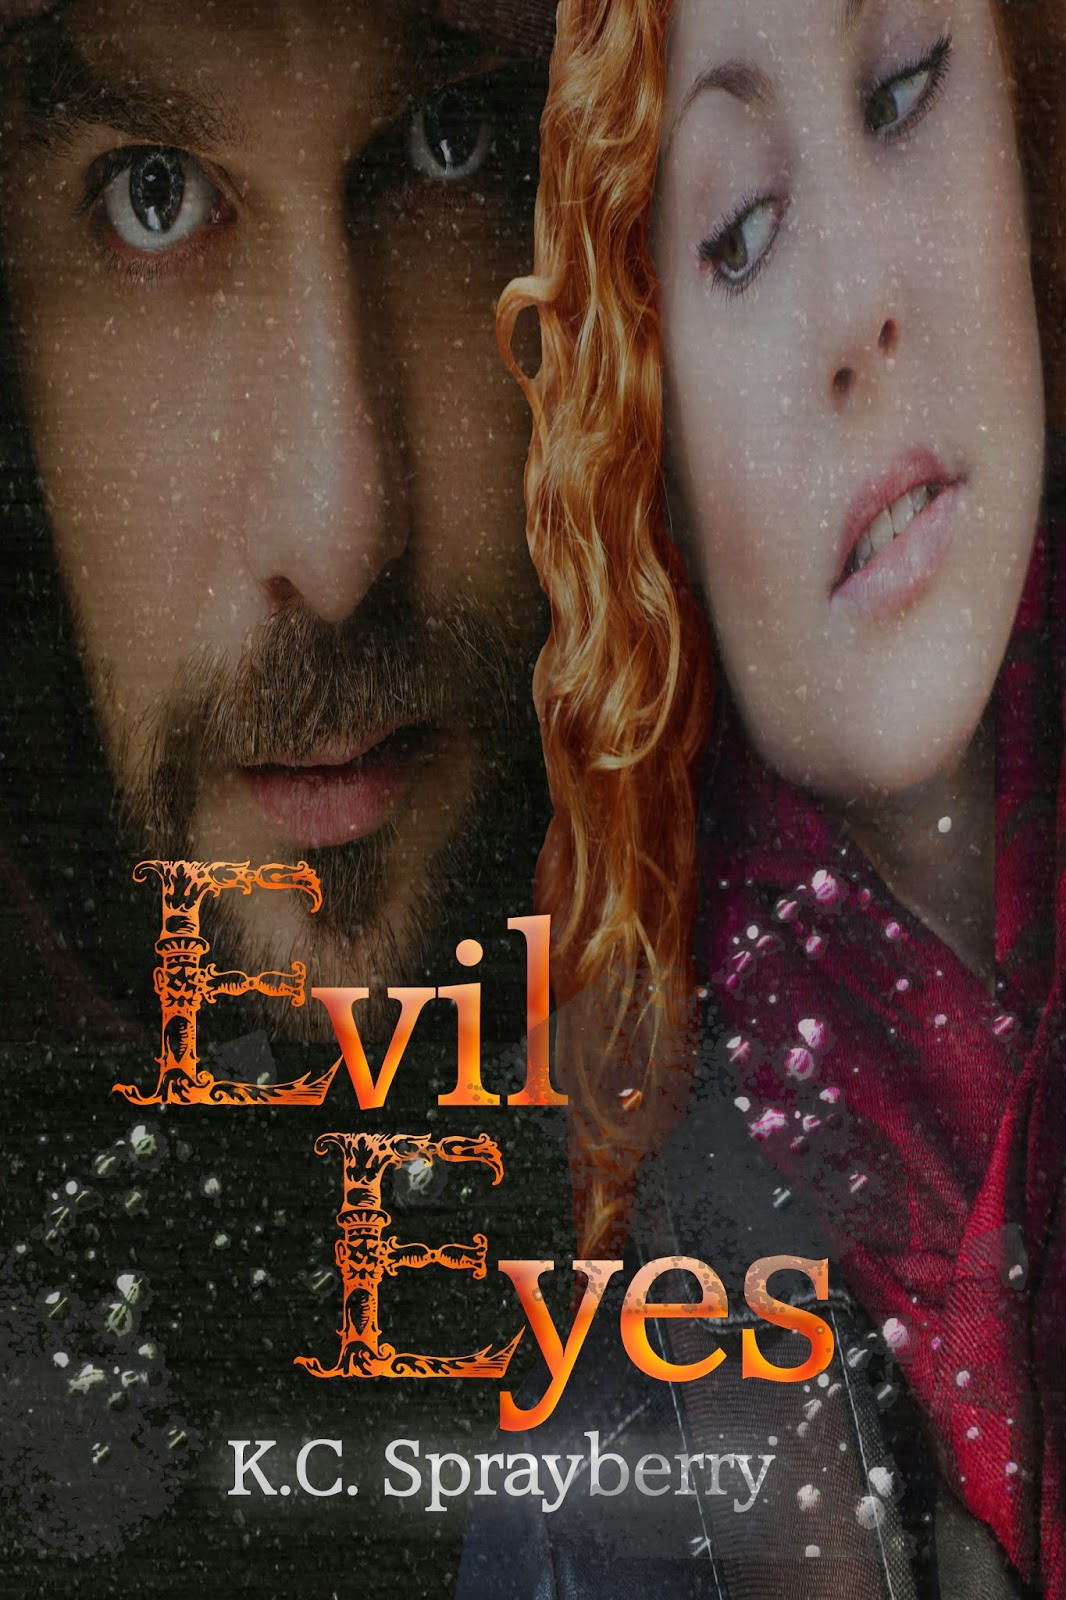 http://www.amazon.com/Evil-Eyes-K-C-Sprayberry-ebook/dp/B00J1QC3V8/ref=sr_1_1?s=books&ie=UTF8&qid=1395789092&sr=1-1&keywords=KC+Sprayberry